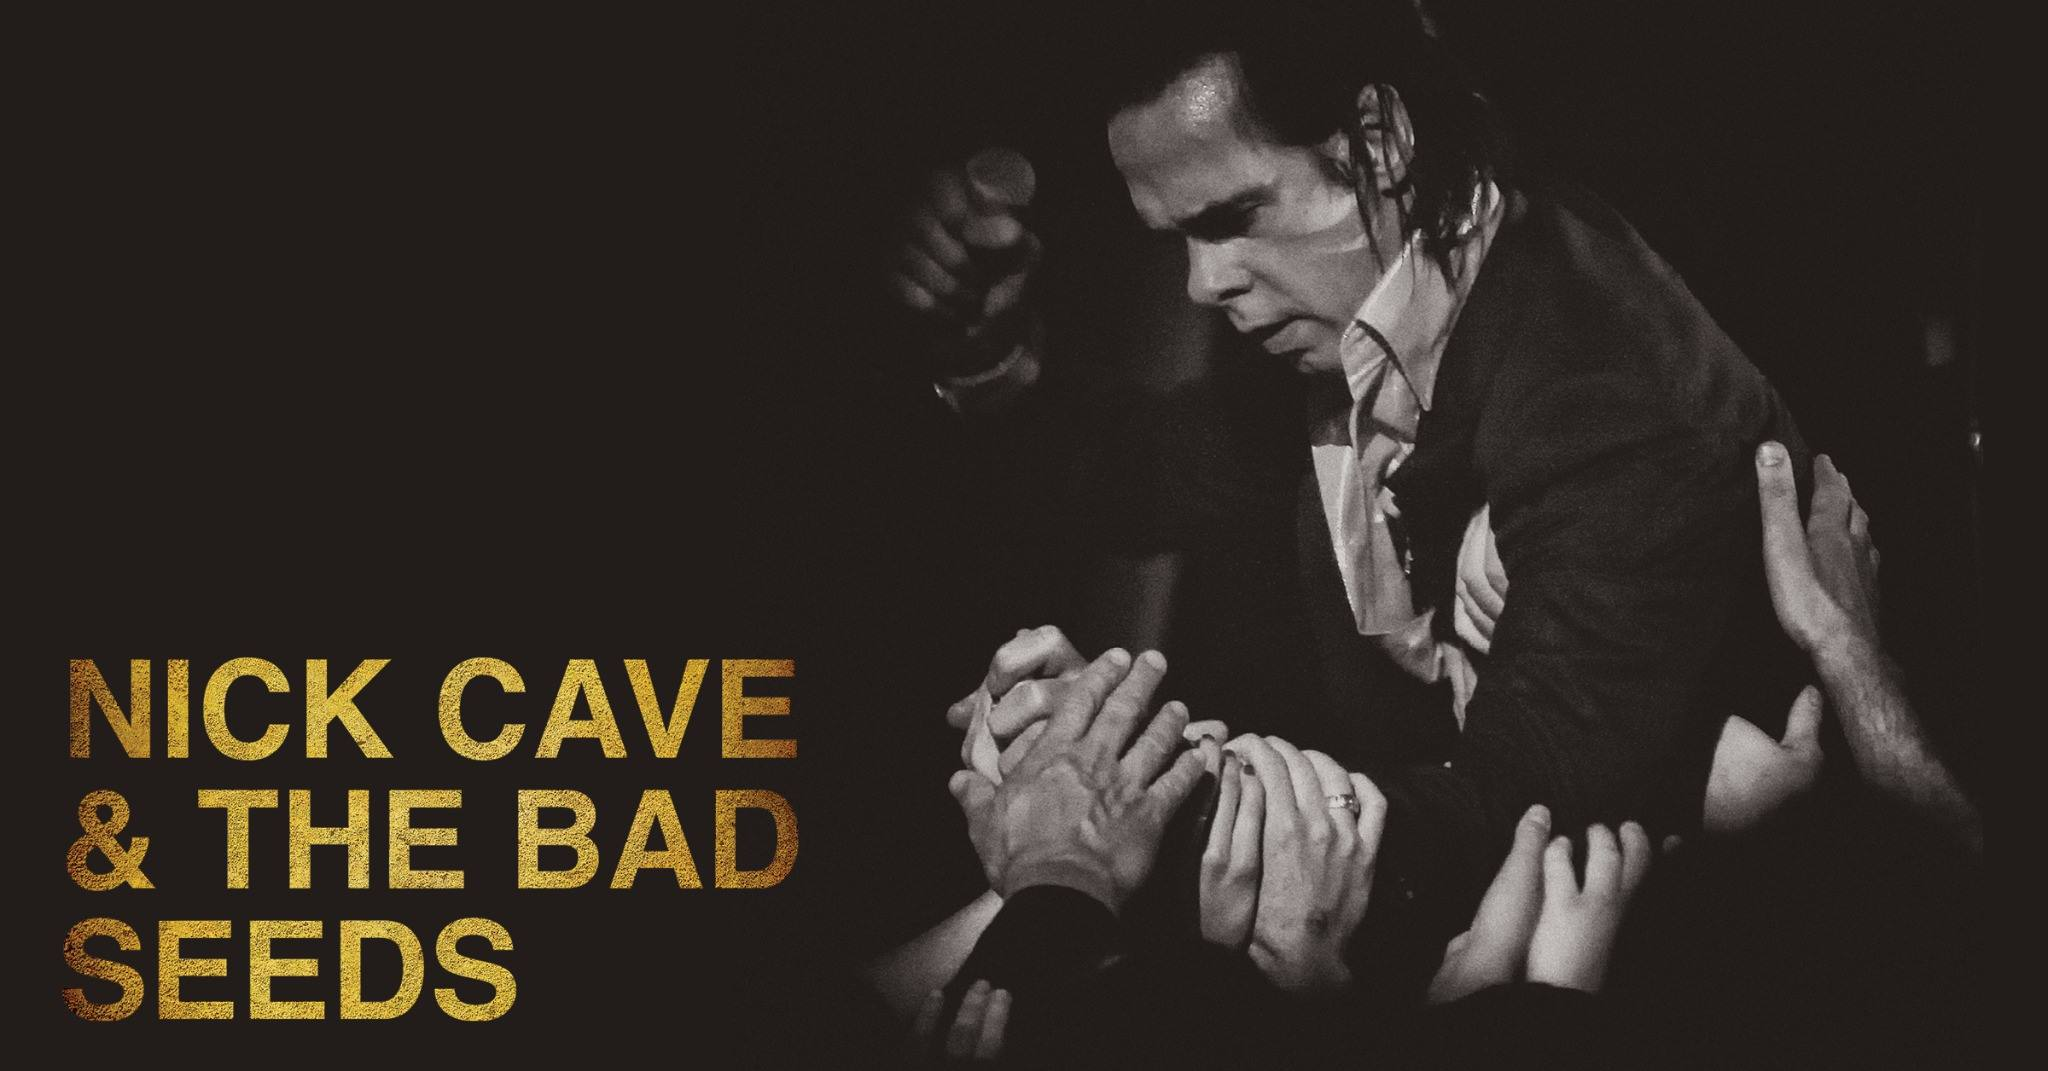 Nick Cave And The Bad Seeds - Ritz Stockholm, April 23, 1987